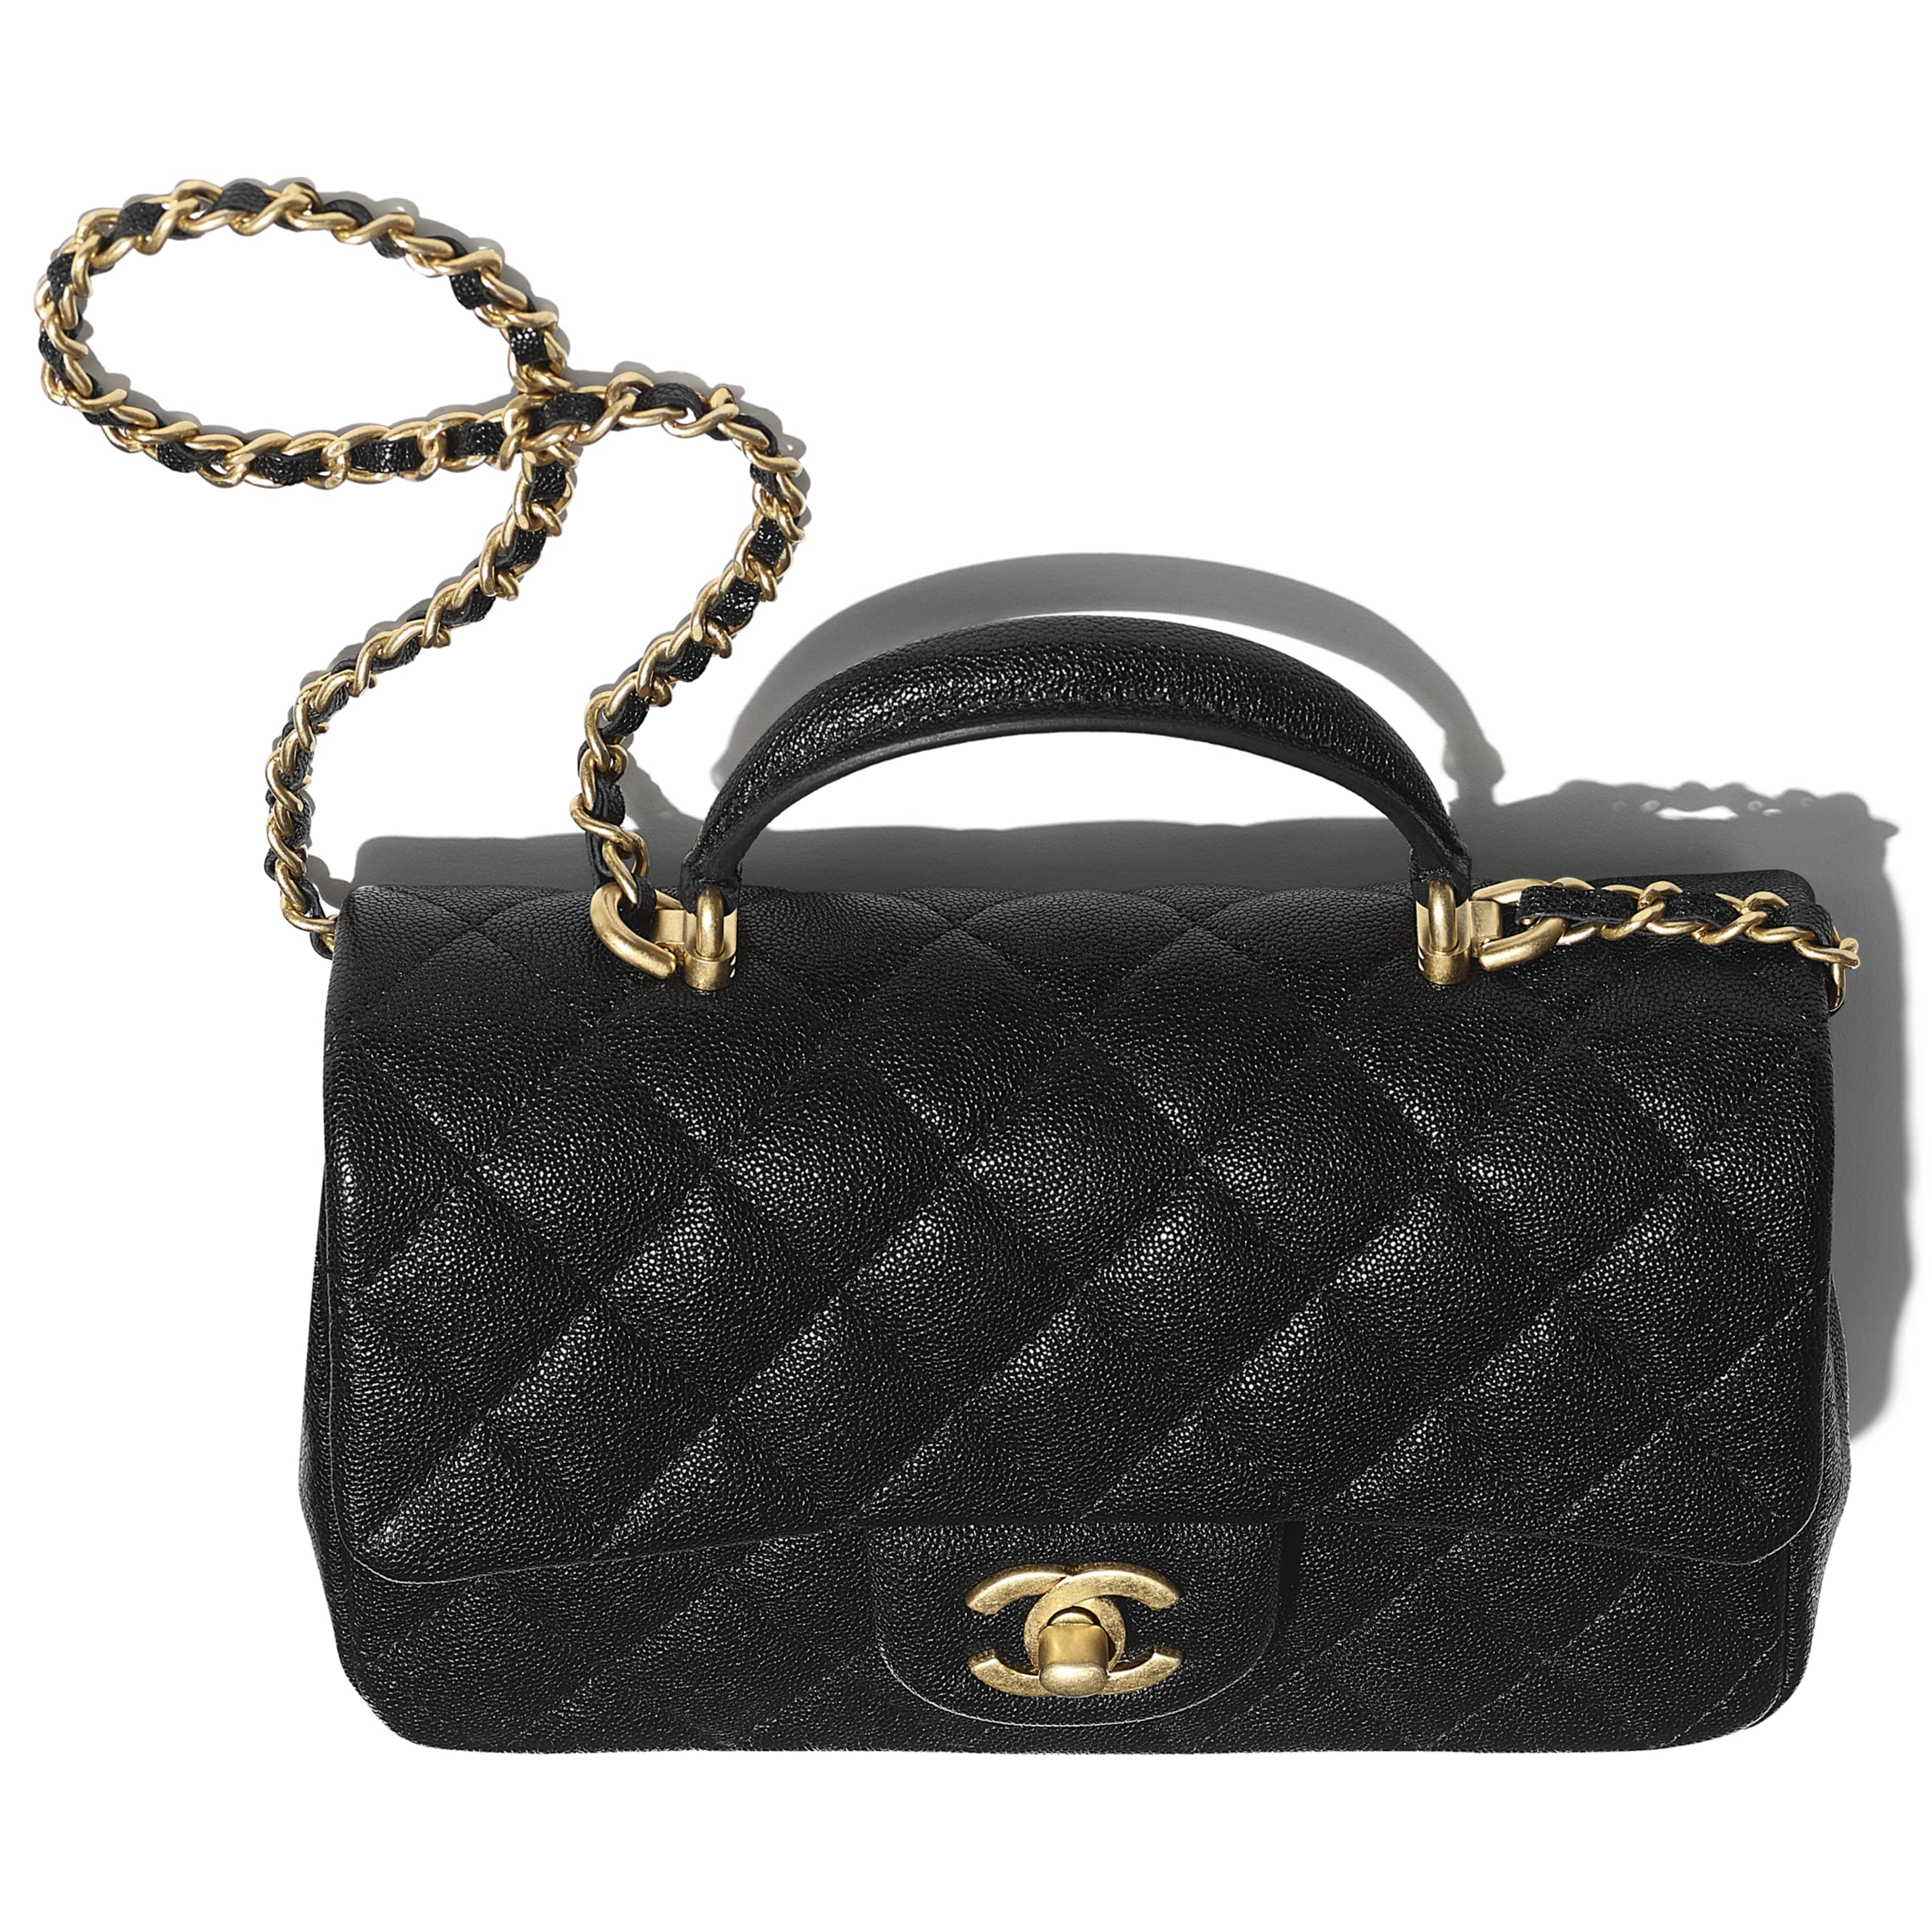 Mini Flap Bag with Top Handle - Black - Grained Calfskin & Gold-Tone Metal - CHANEL - Extra view - see standard sized version